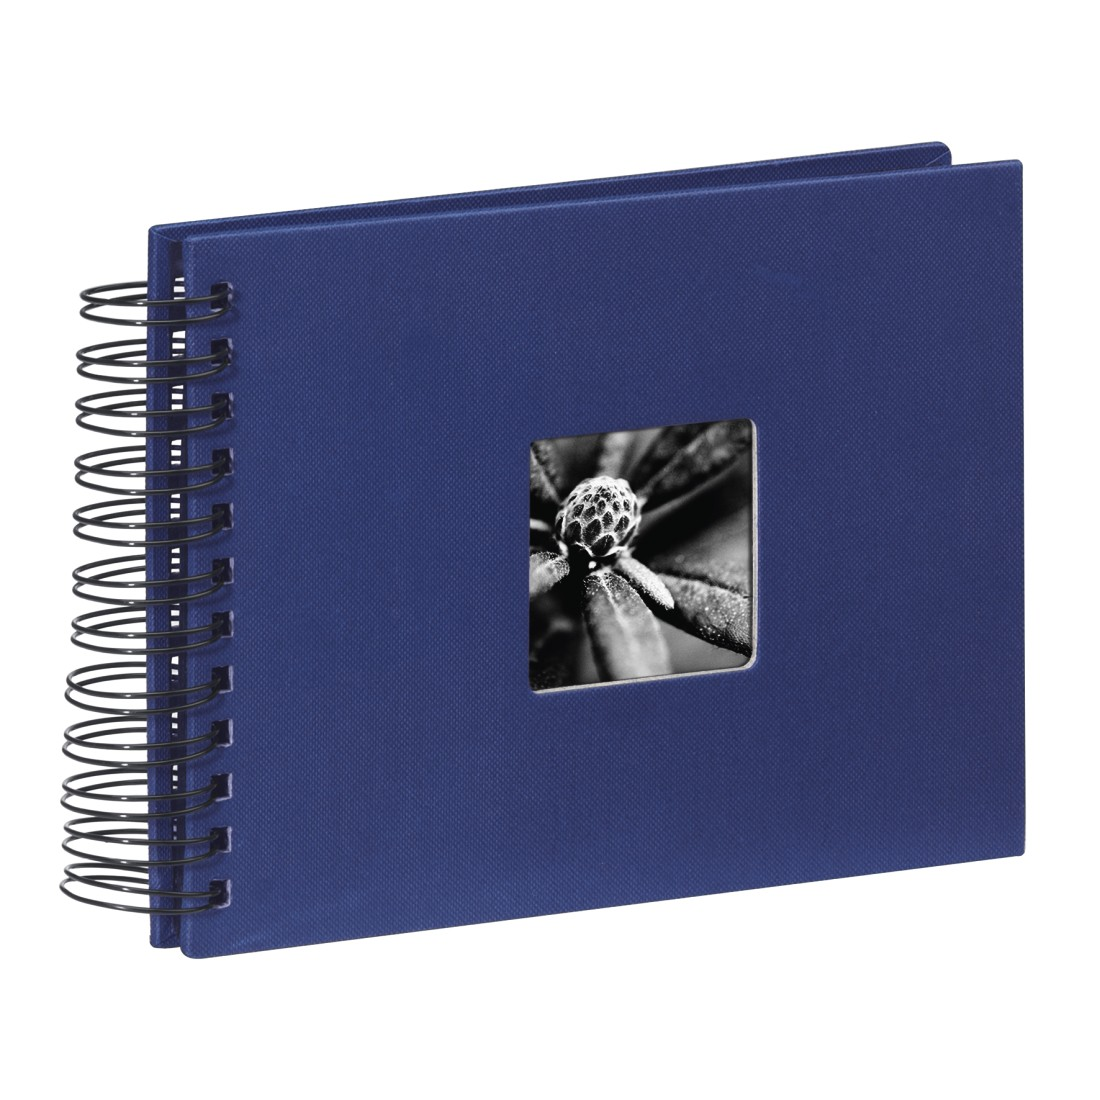 abx High-Res Image - Hama, Fine Art Spiralbound Album, 24 x 17 cm, 50 black pages, blue